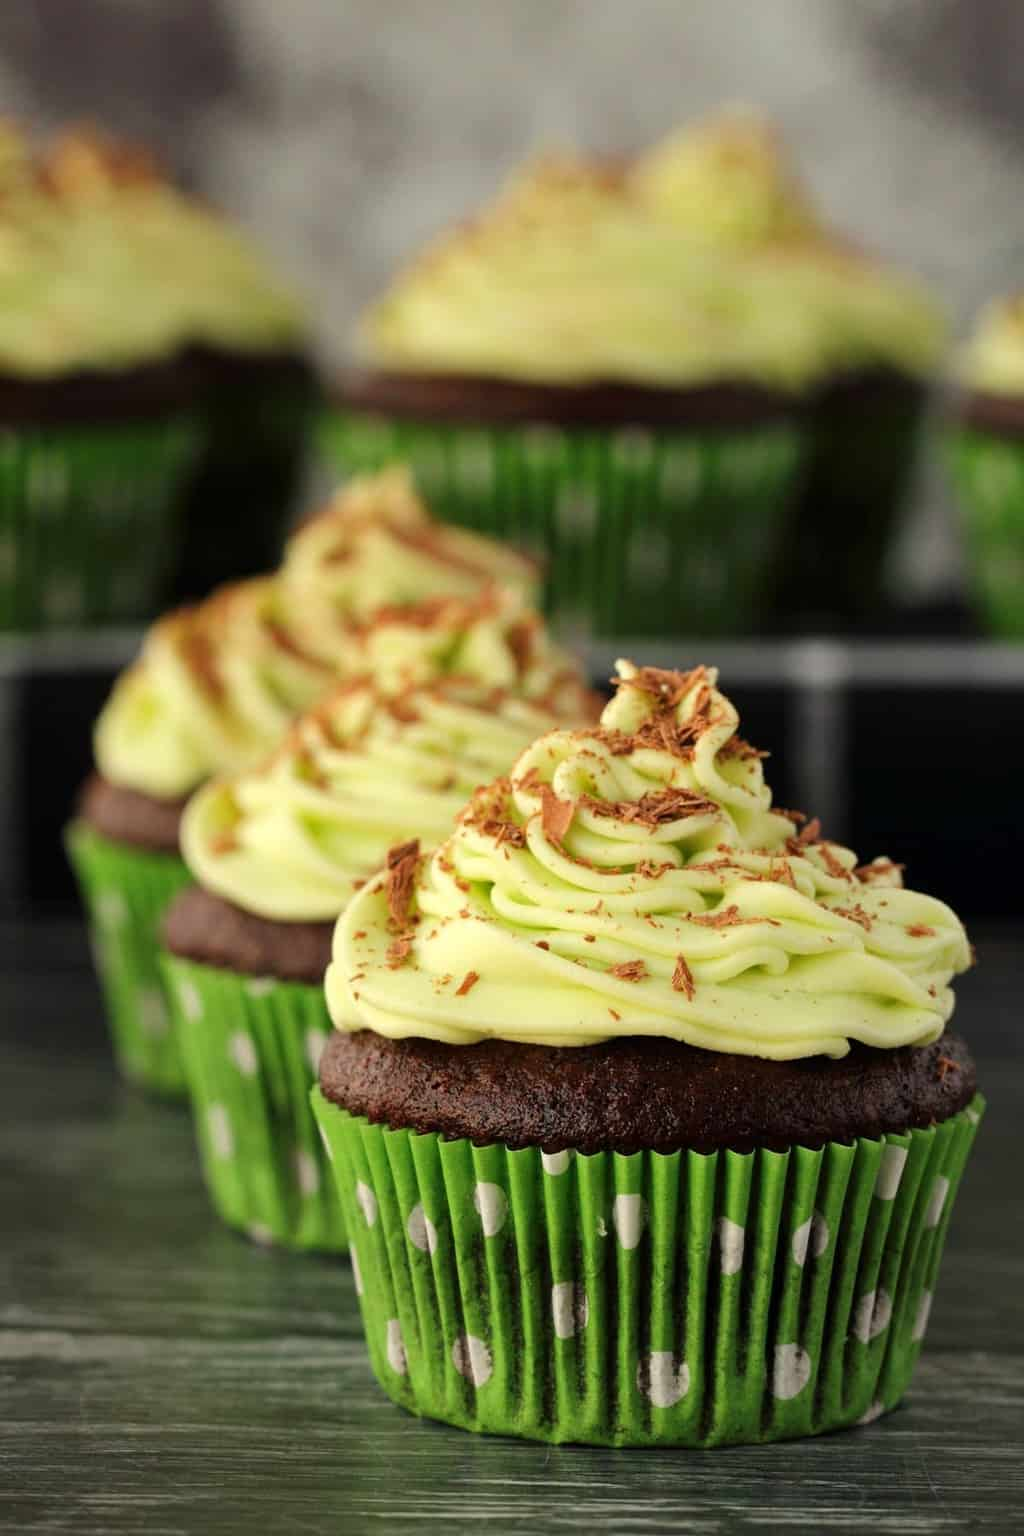 Vegan chocolate cupcakes topped with mint buttercream frosting and chocolate shavings.